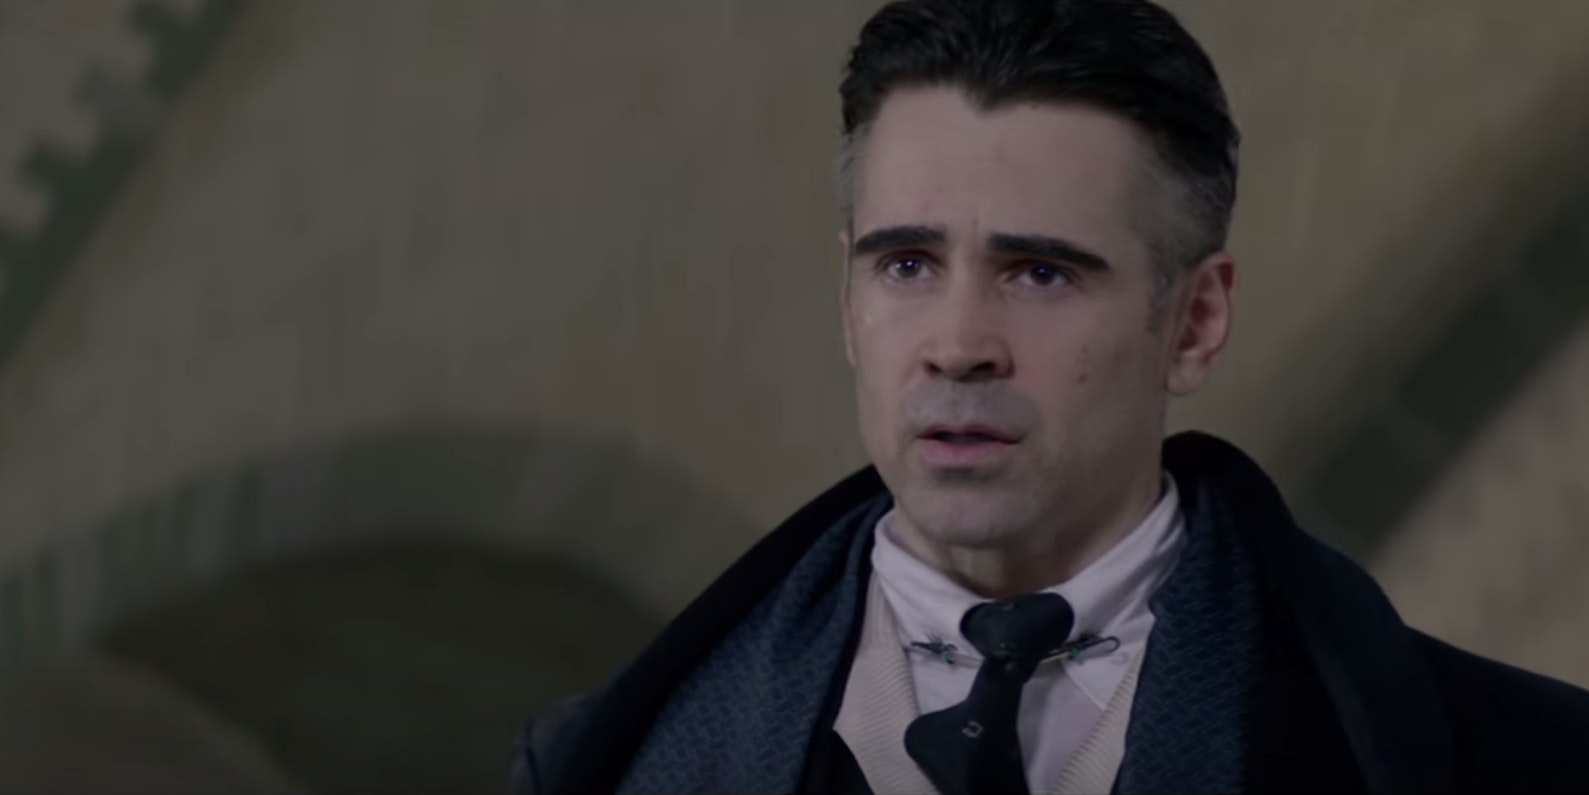 Colin Farrell as Percival Graves in 'Fantastic Beasts and Where to Find Them'